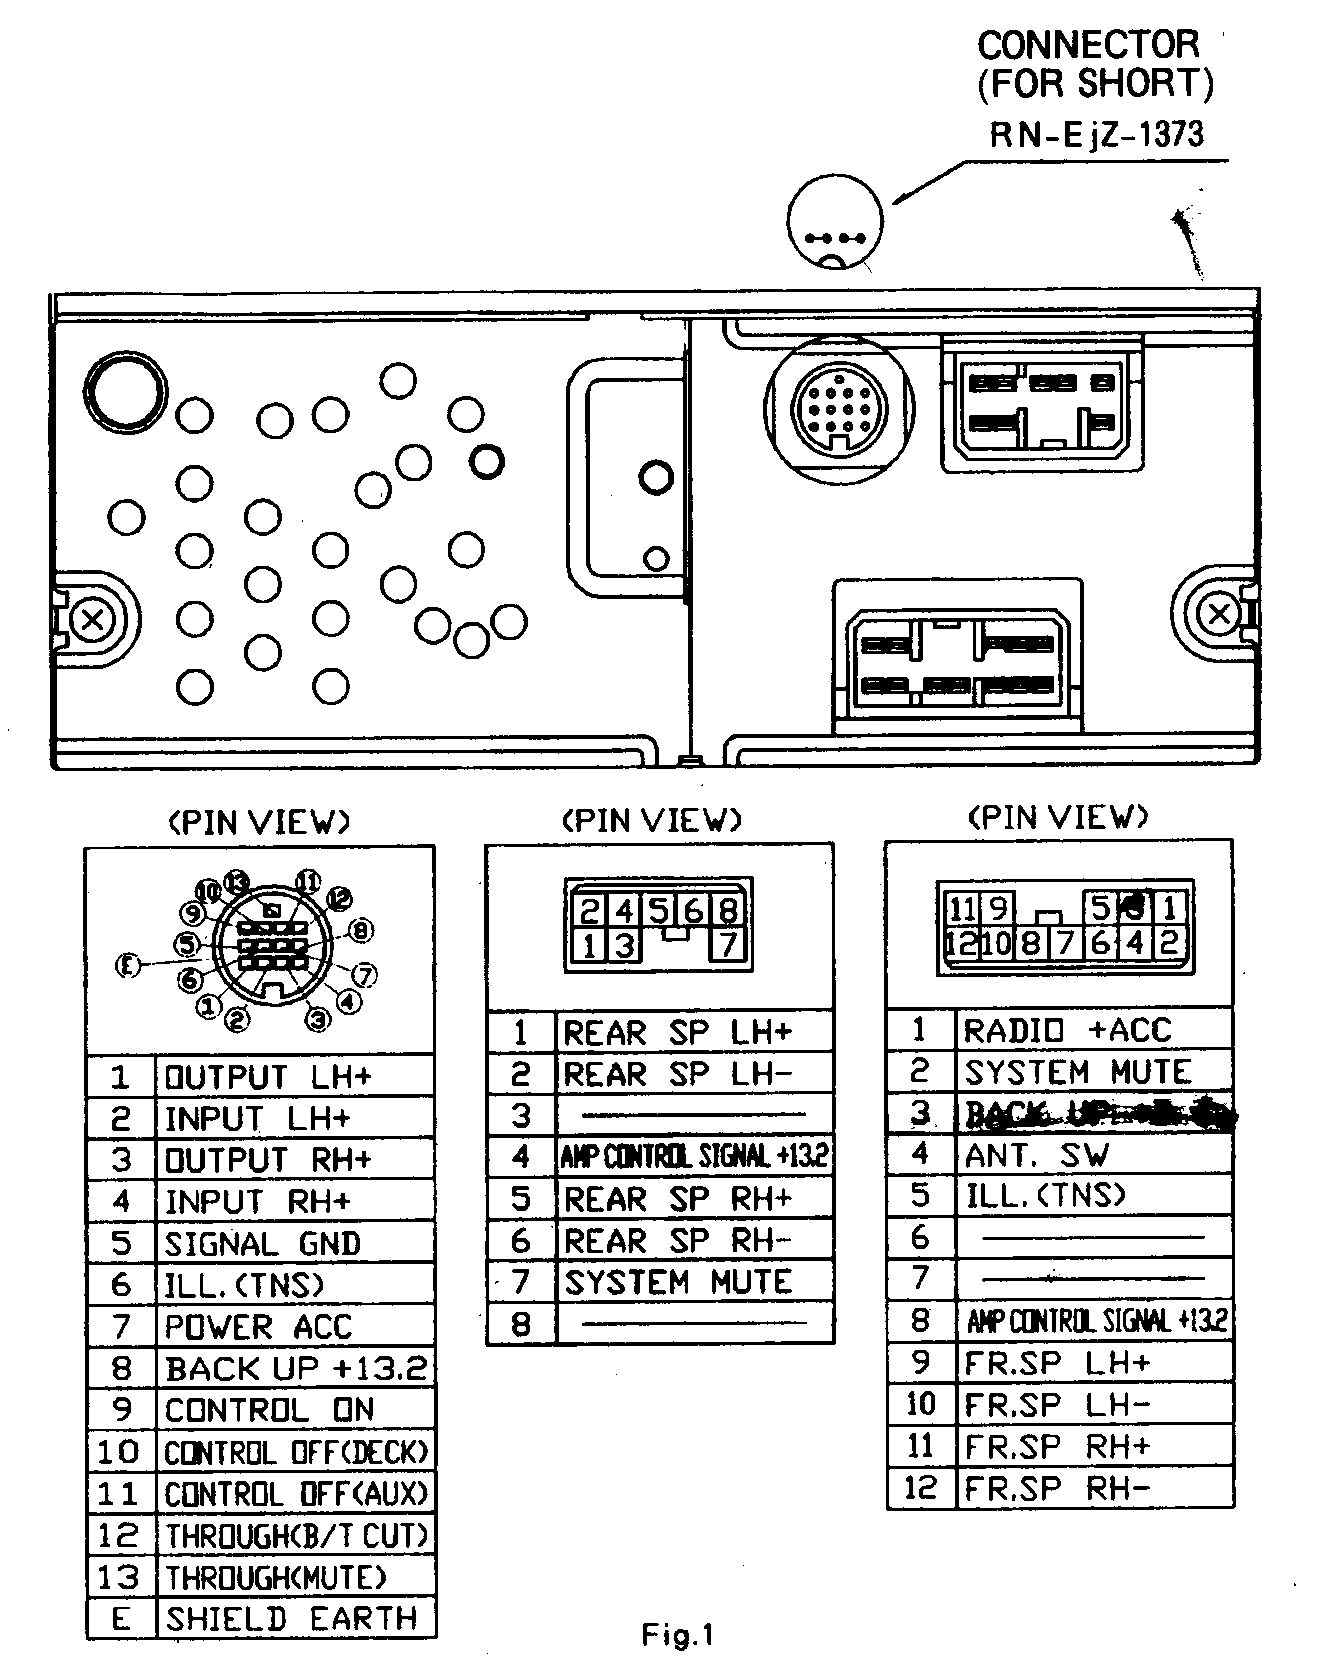 hight resolution of 1999 mazda protege radio wiring diagram detailed schematics diagram rh keyplusrubber com 2002 mitsubishi montero stereo